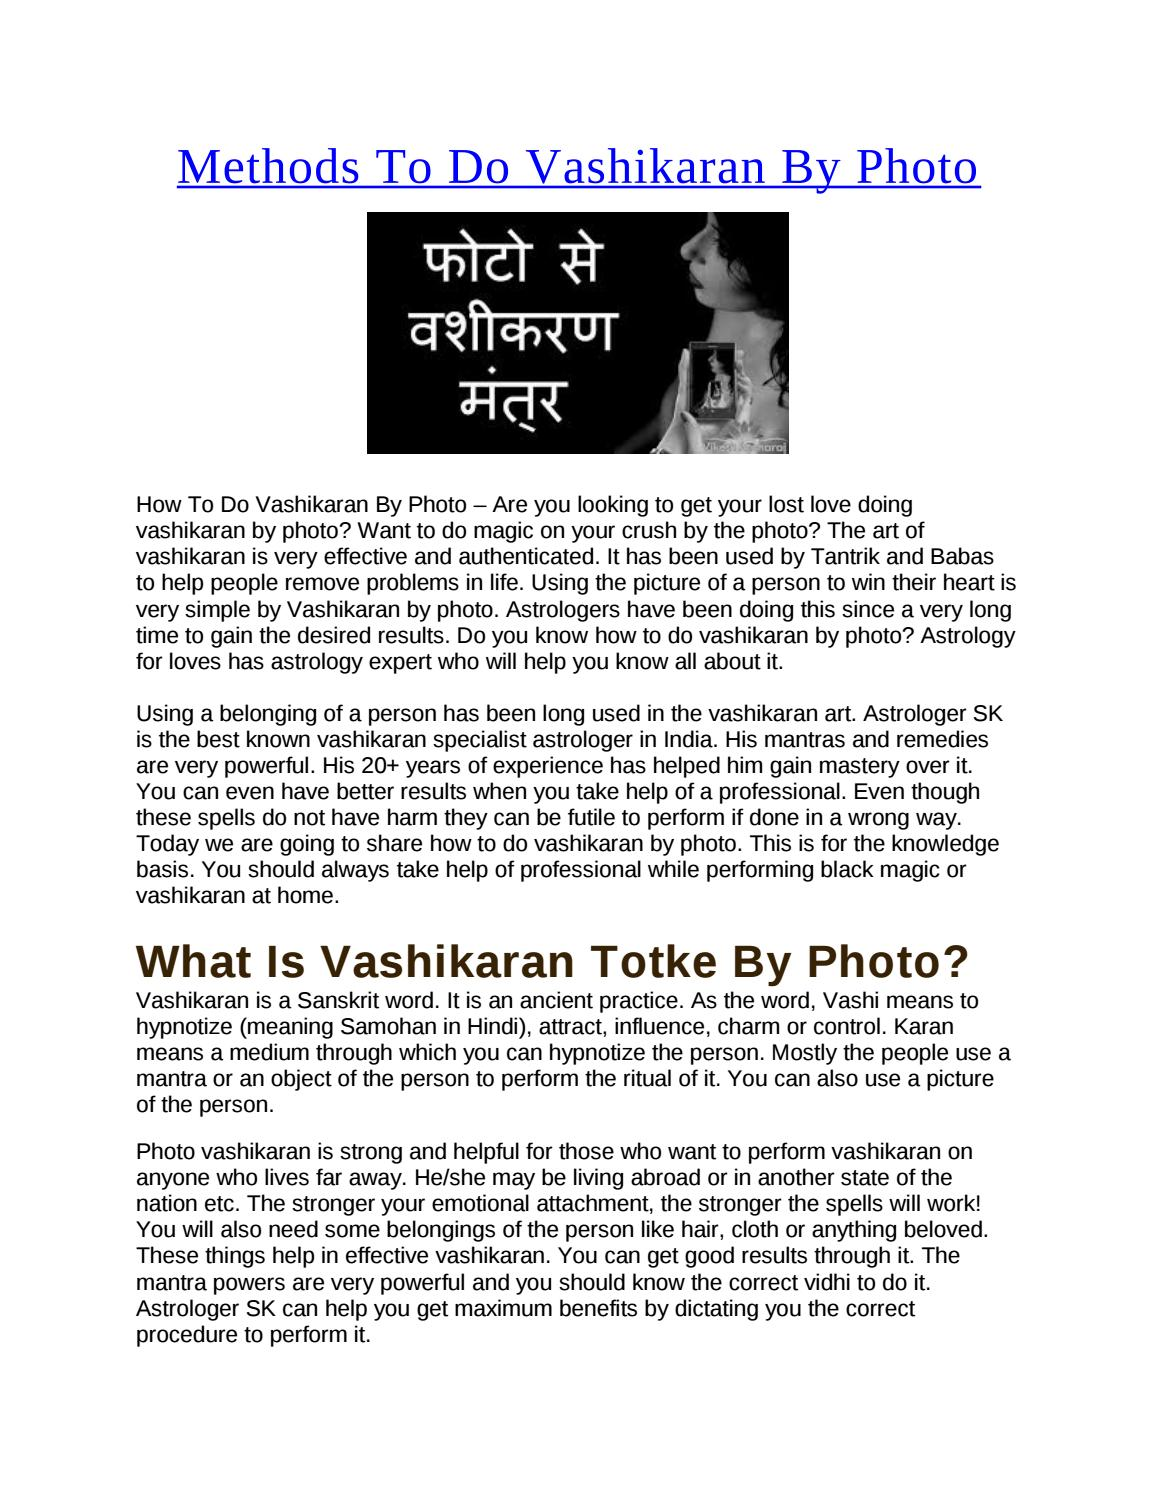 Vashikaran by Photo by astrology5213 - issuu